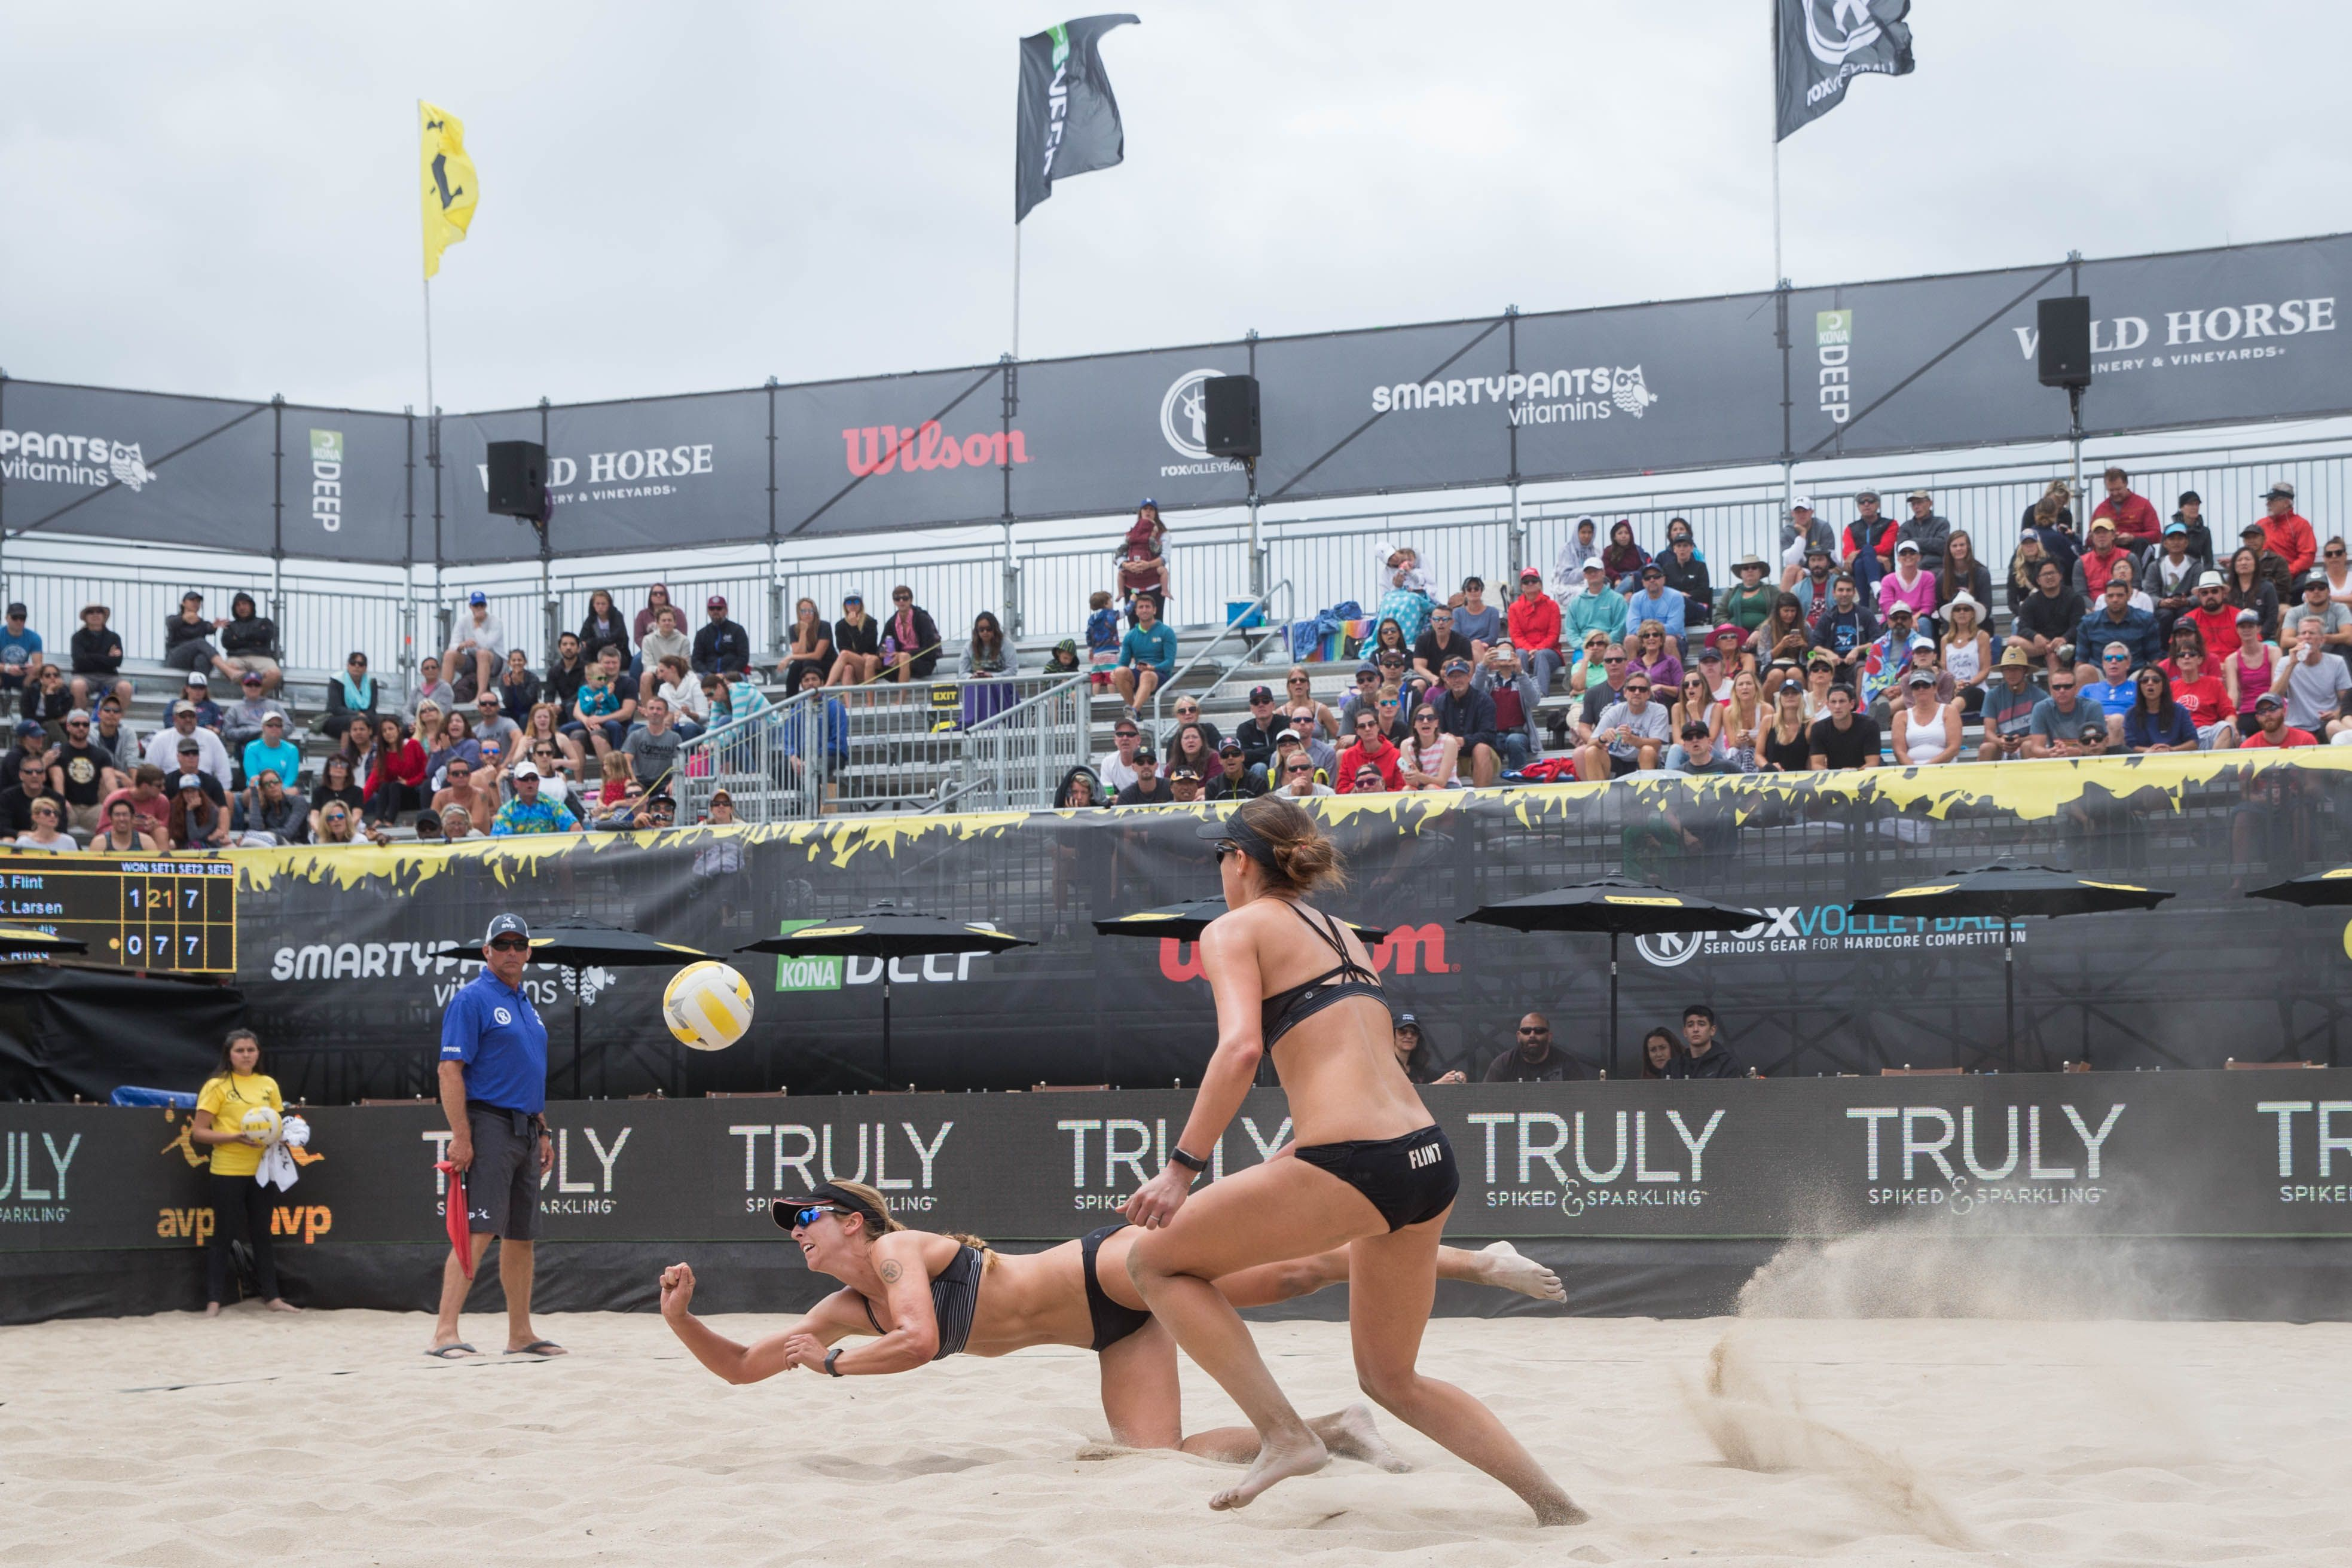 Avp Huntington Beach Open 2017 Photo Gallery Avp Beach Volleyball Beach Volleyball Avp Volleyball Huntington Beach